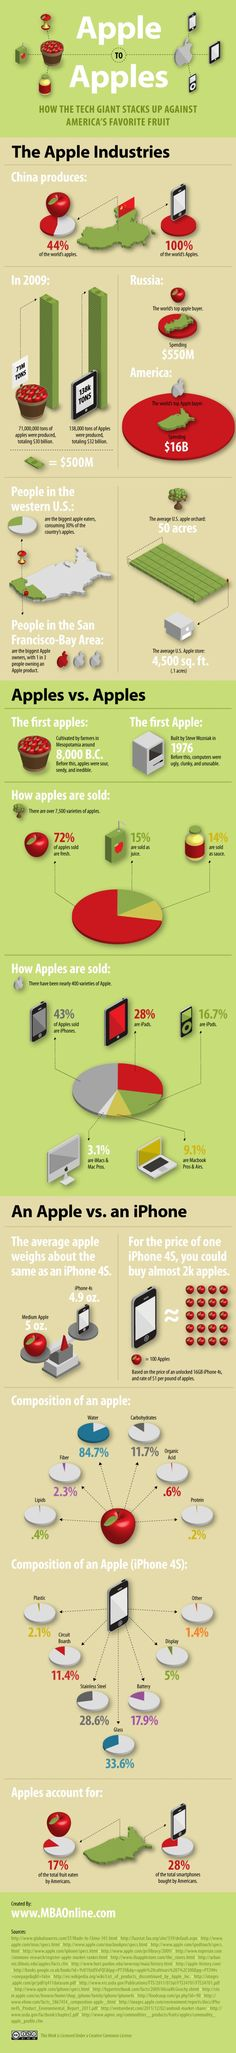 Apple lovers of the world, unite and take over. (This is just plain silly. hehe)